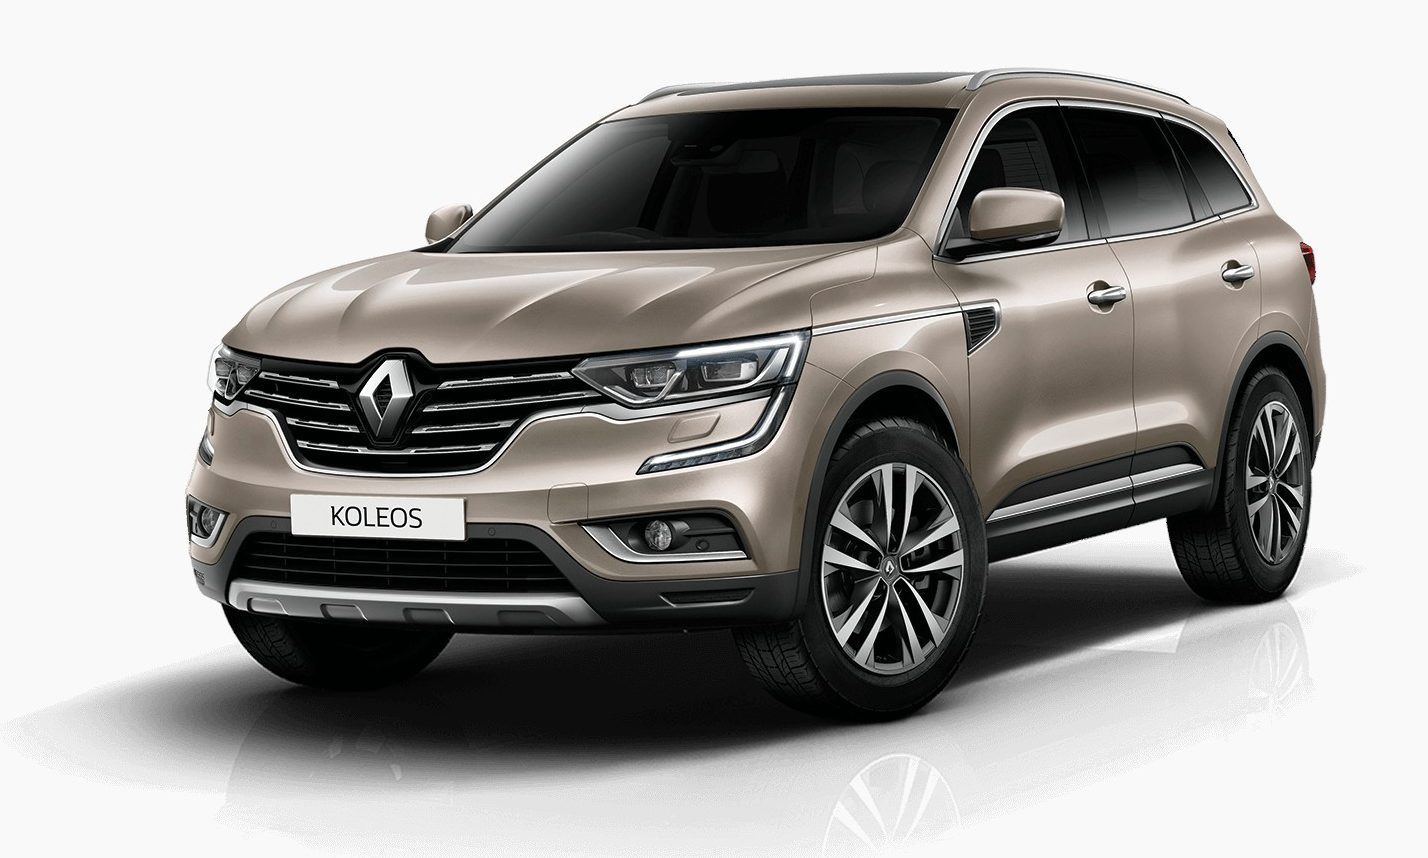 2018 Renault Koleos Pe Car 2018 Renault Koleos Car Price